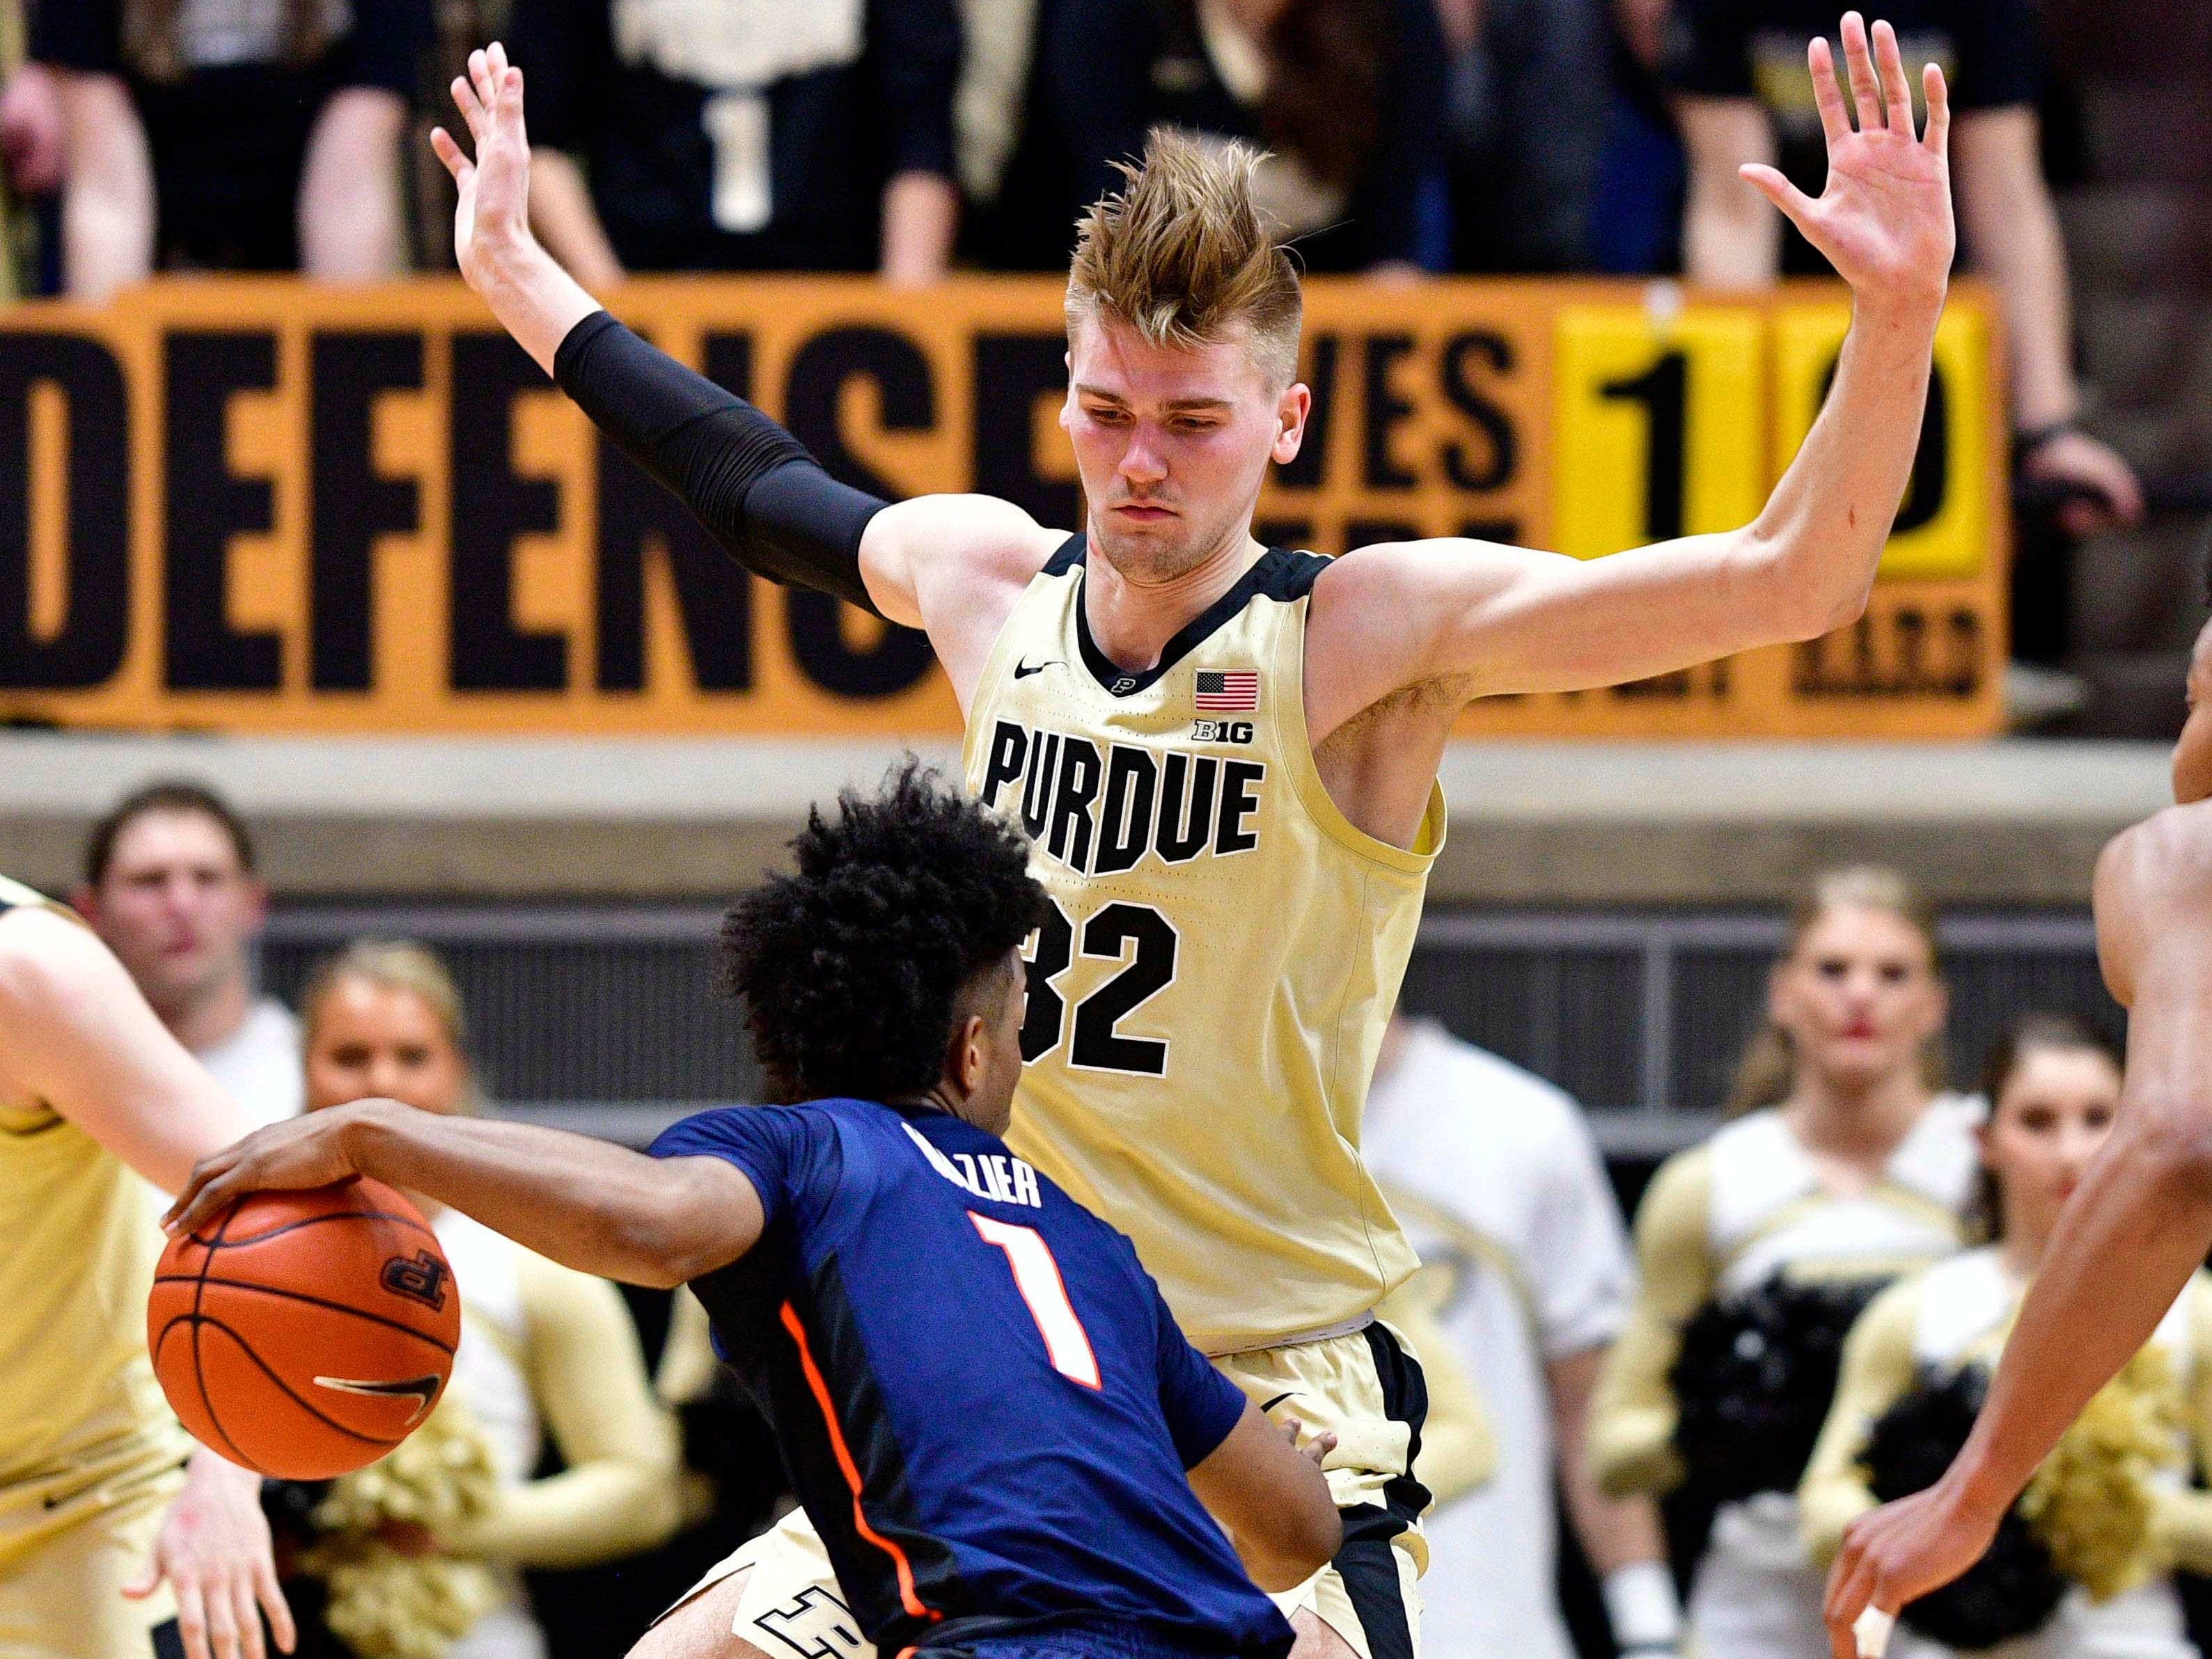 Feb 27, 2019; West Lafayette, IN, USA; Purdue Boilermakers center Matt Haarms (32) guards Illinois Fighting Illini guard Trent Frazier (1) during the second half of the game at Mackey Arena. The Purdue Boilermakers defeated the Illinois Fighting Illini 73 to 56.